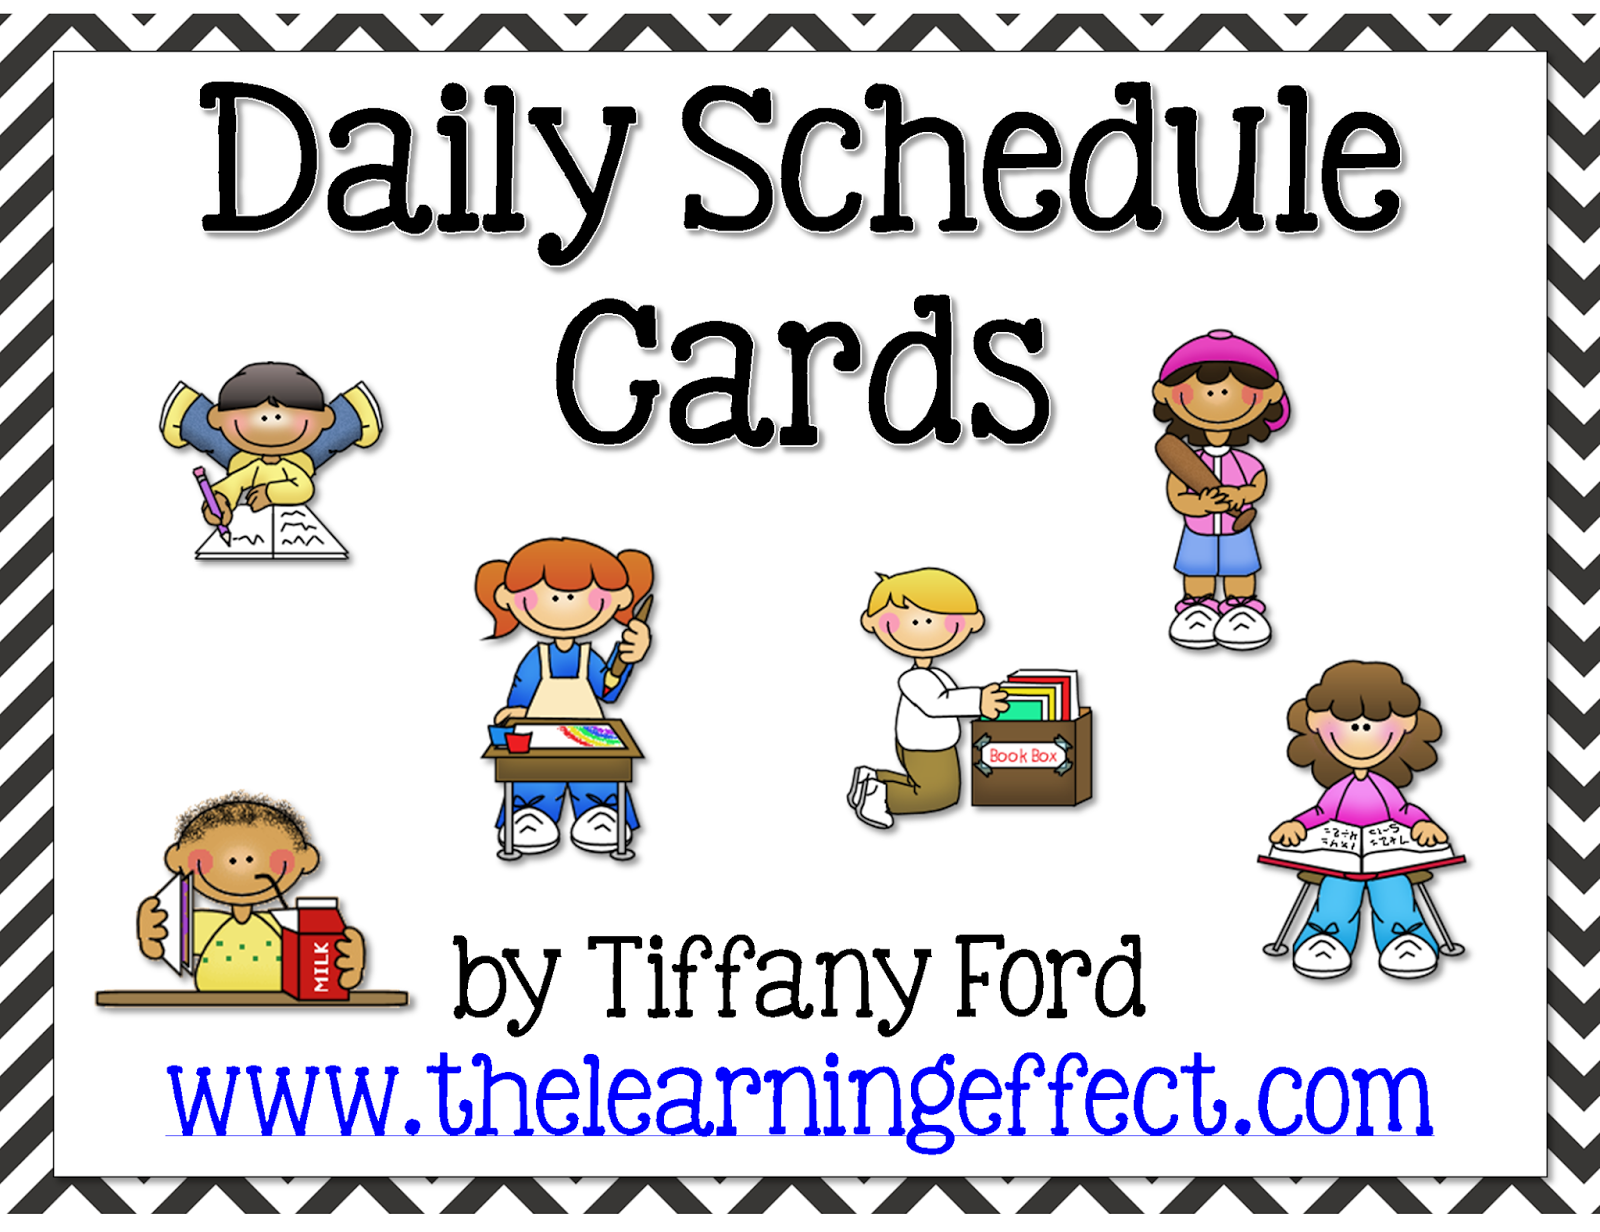 http://www.teacherspayteachers.com/Product/Daily-Schedule-Cards-Large-Variety-495001